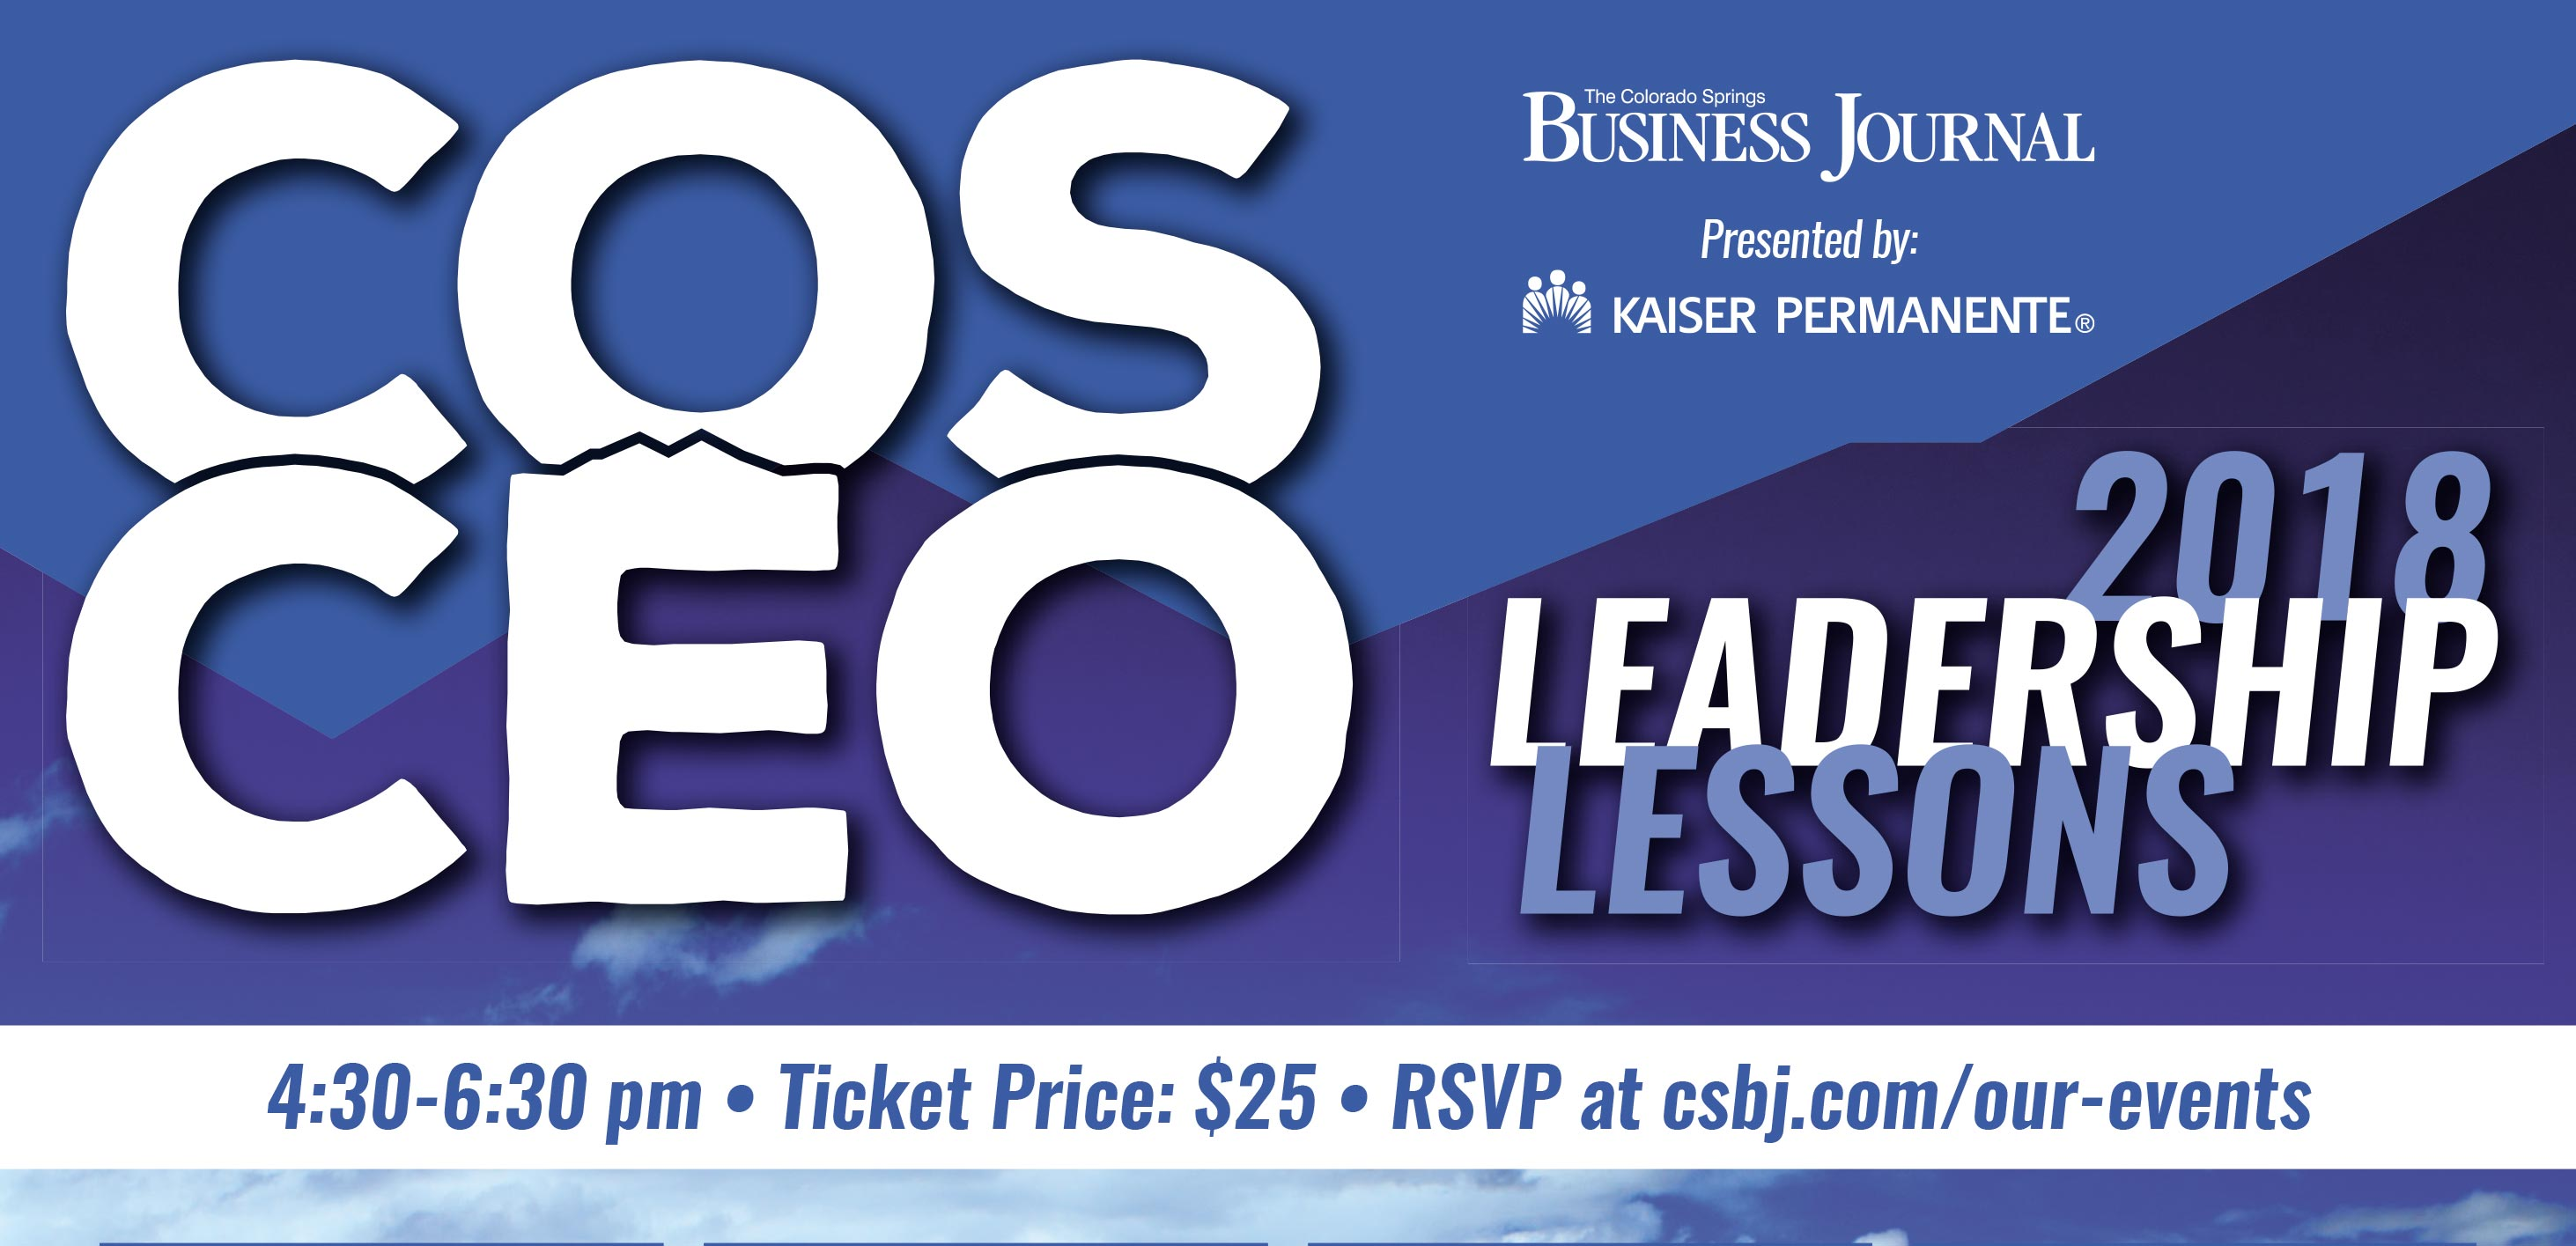 Cos ceo leadership lessons tickets the mining exchange sponsored by herring bank amnet ppcc the alternative board stockman kast ryan co and navakai malvernweather Images